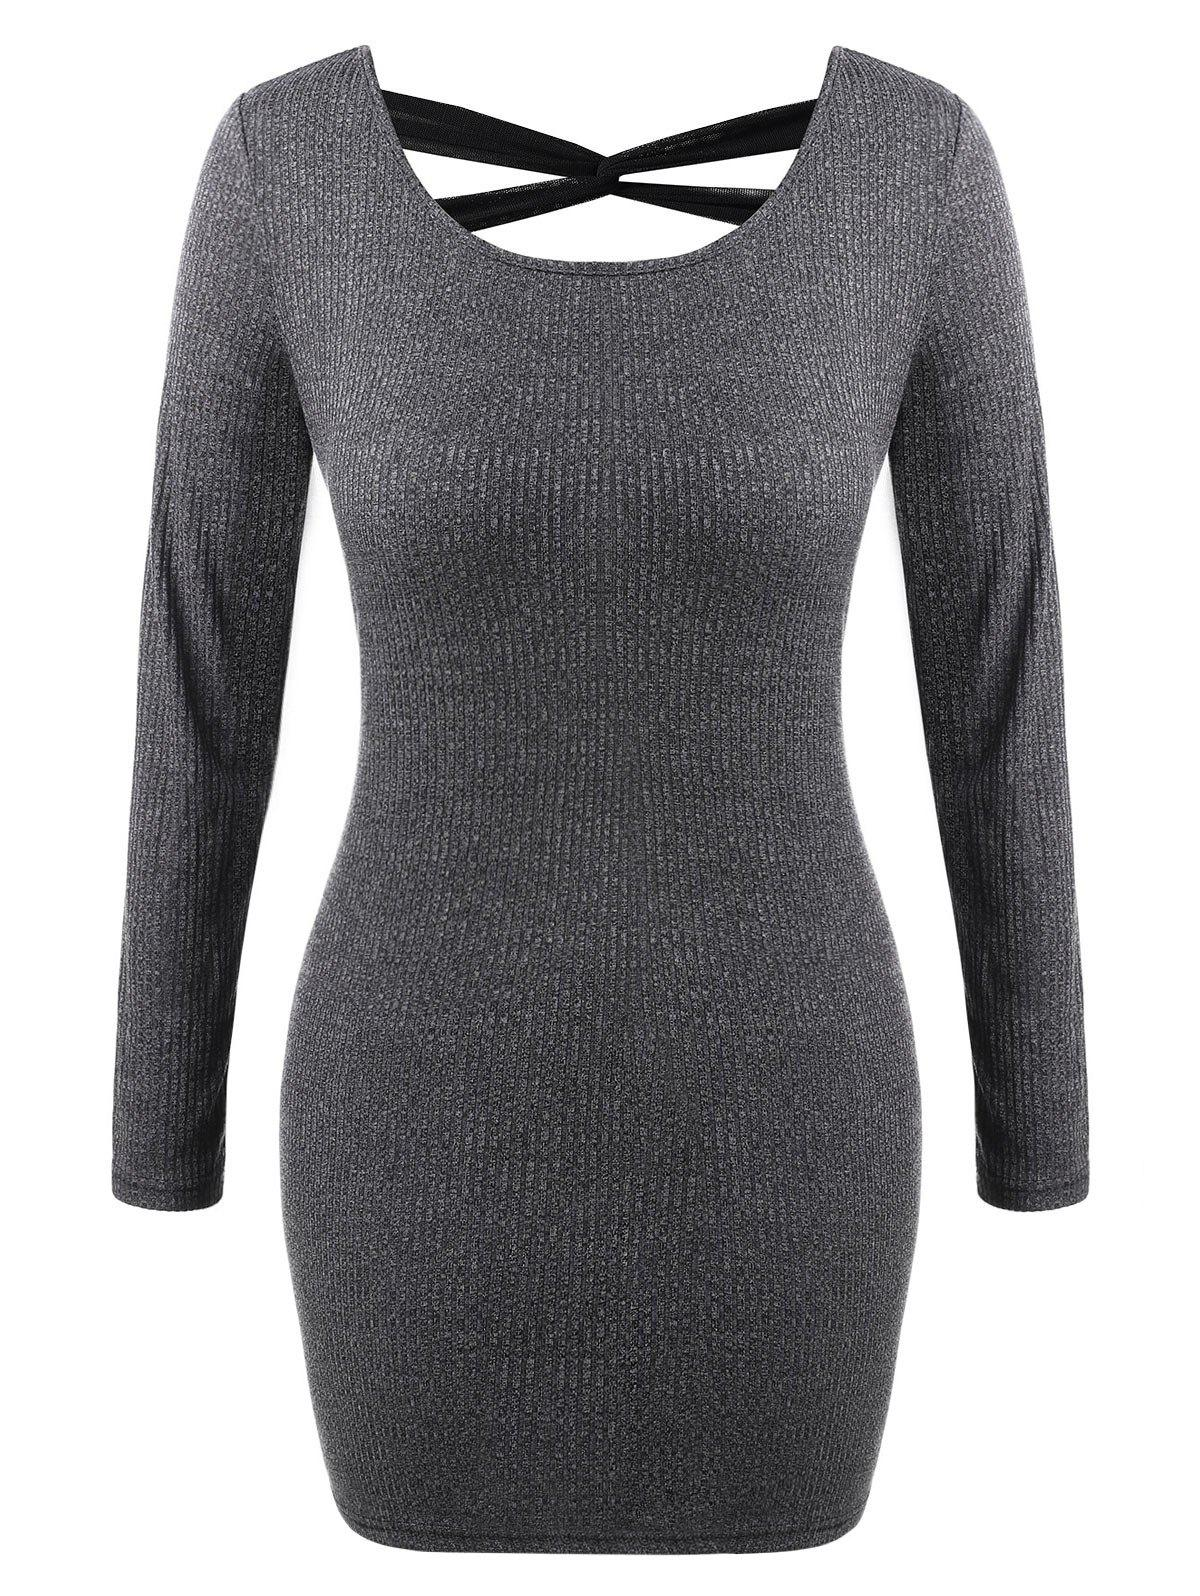 Outfits Criss Cross Knit Bodycon Dress